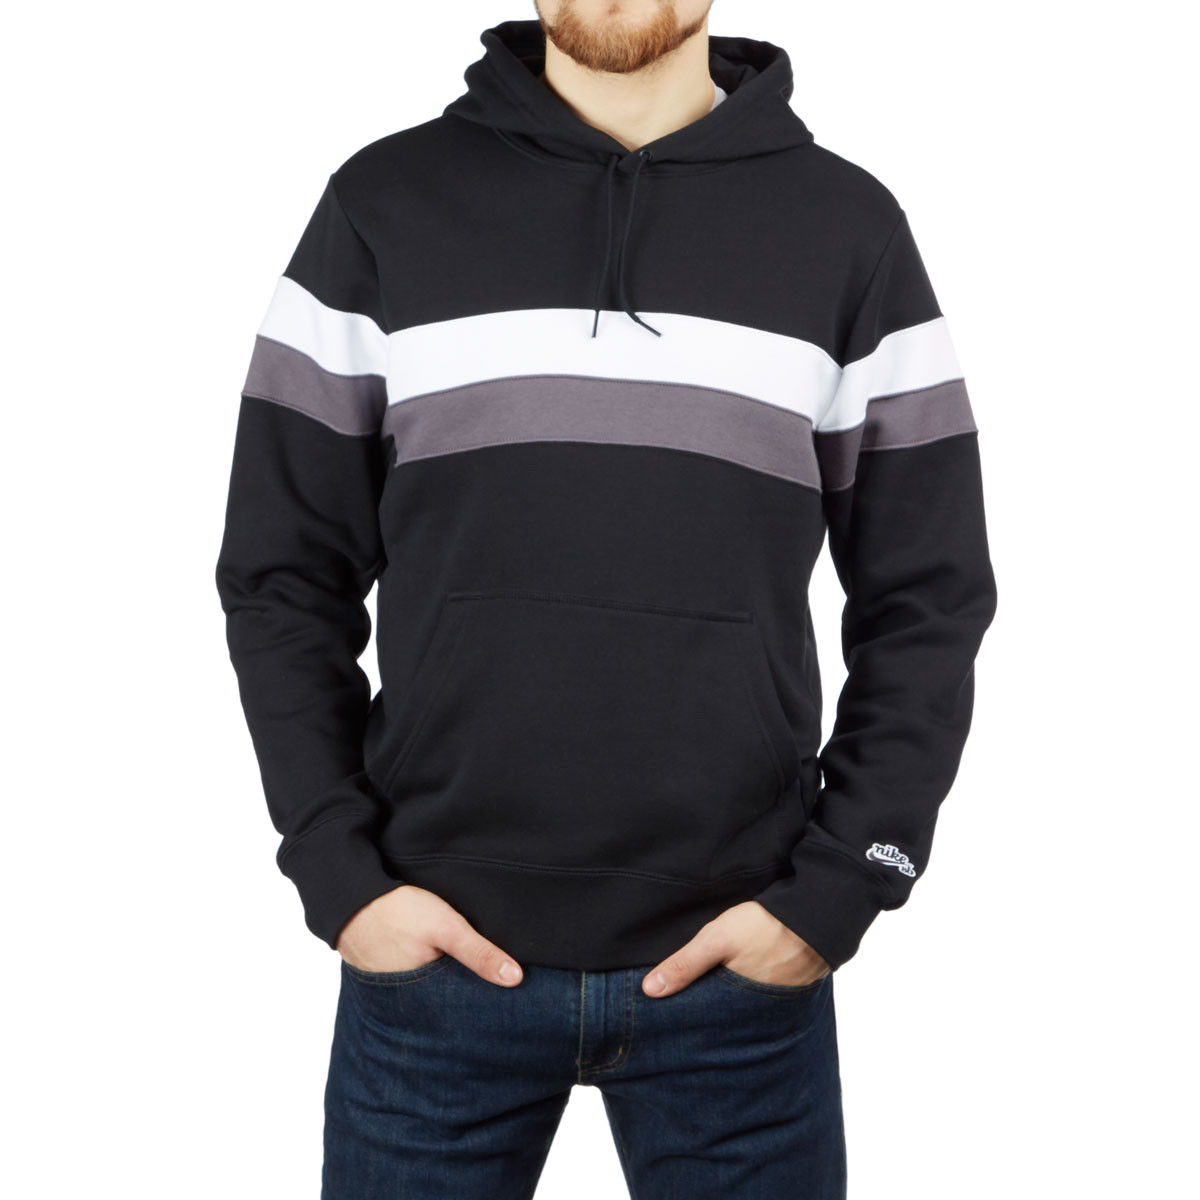 Grey and black striped hoodie sorry